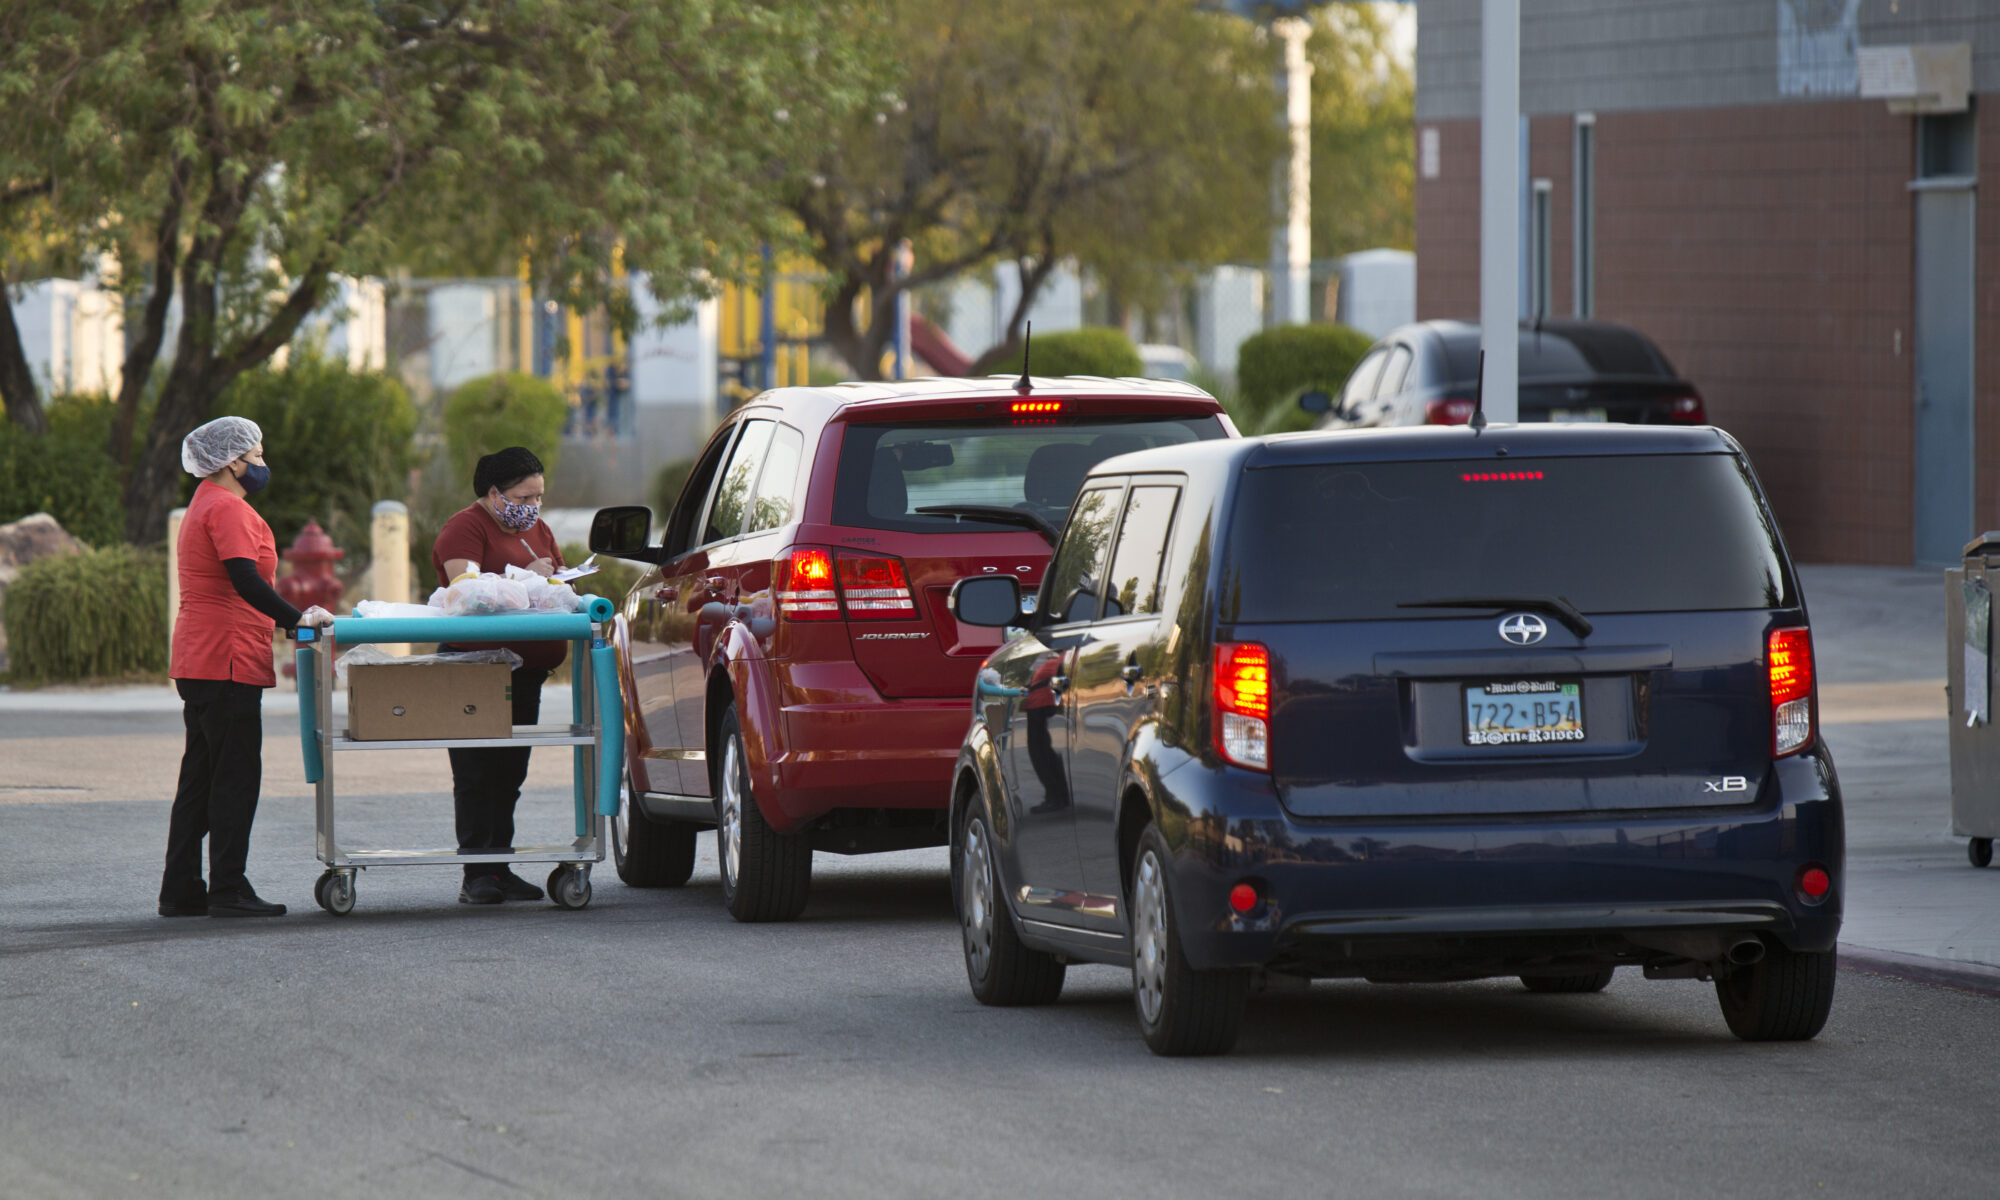 School workers distribute food to a person through the window of their car.